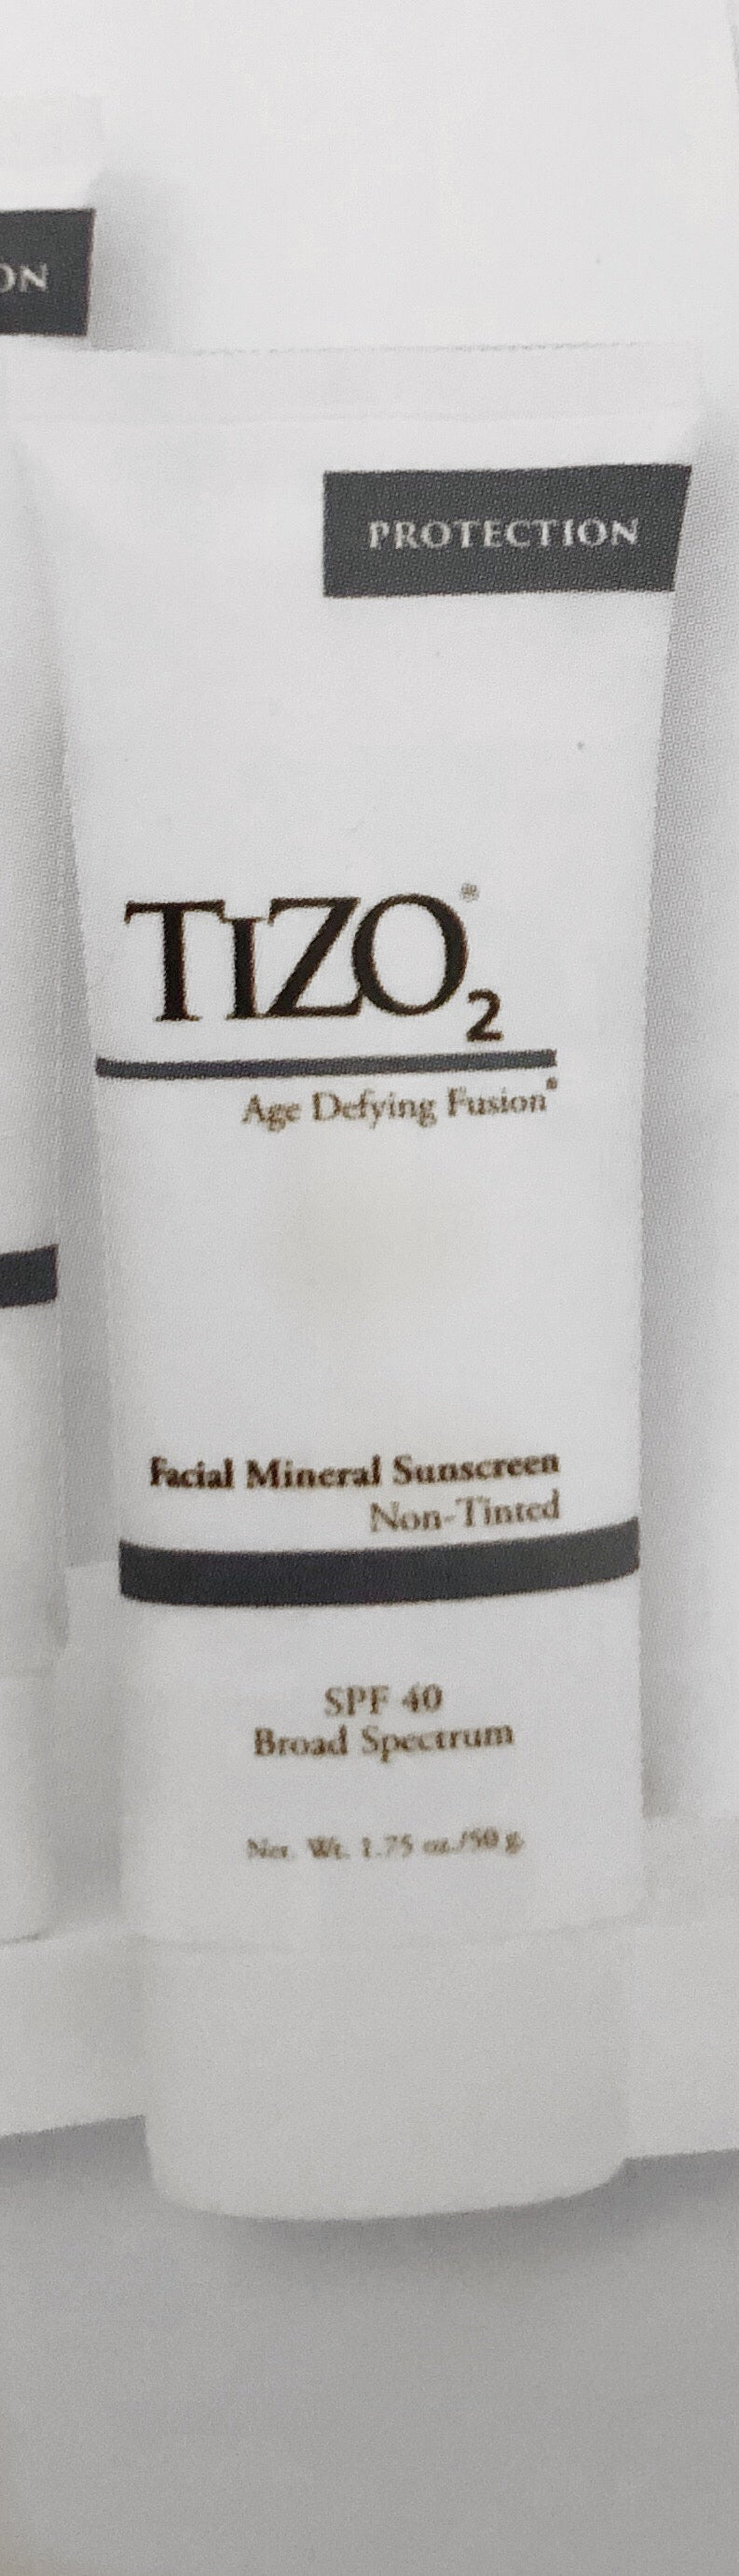 Tizo 2 Facial Sunscreen